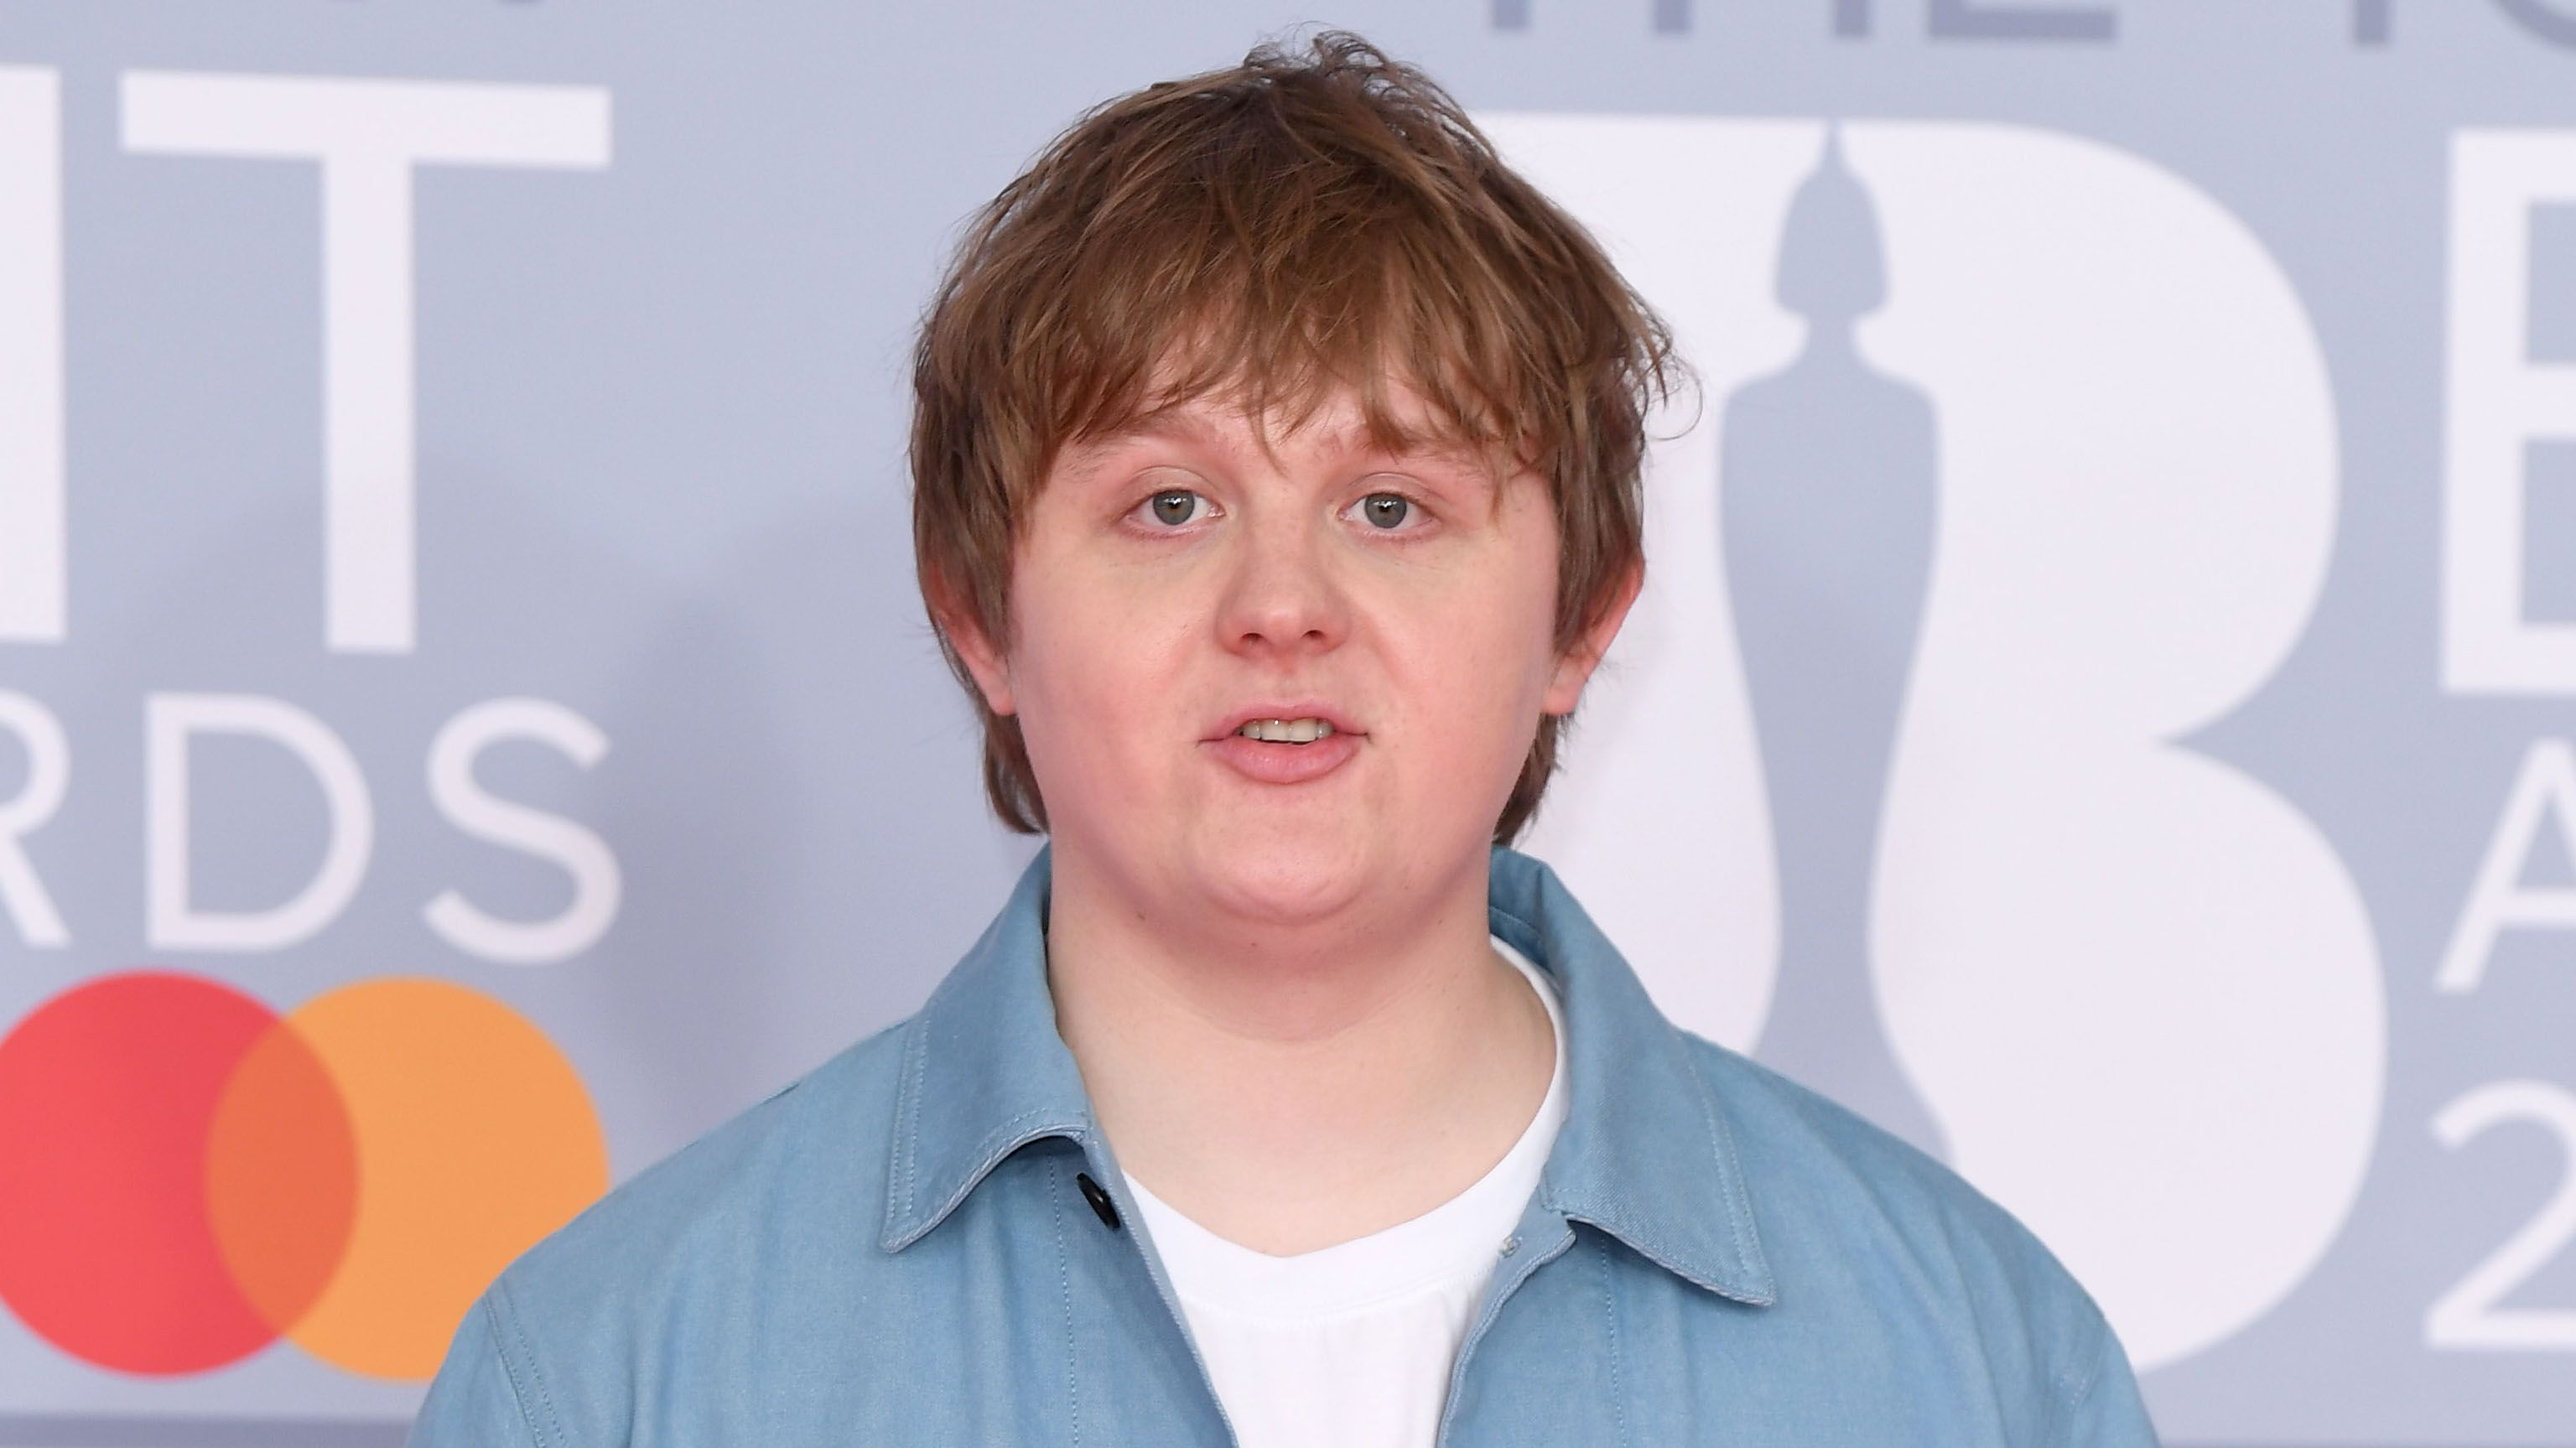 """Lewis Capaldi isn't releasing music in 2020 because """"people have suffered enough"""""""